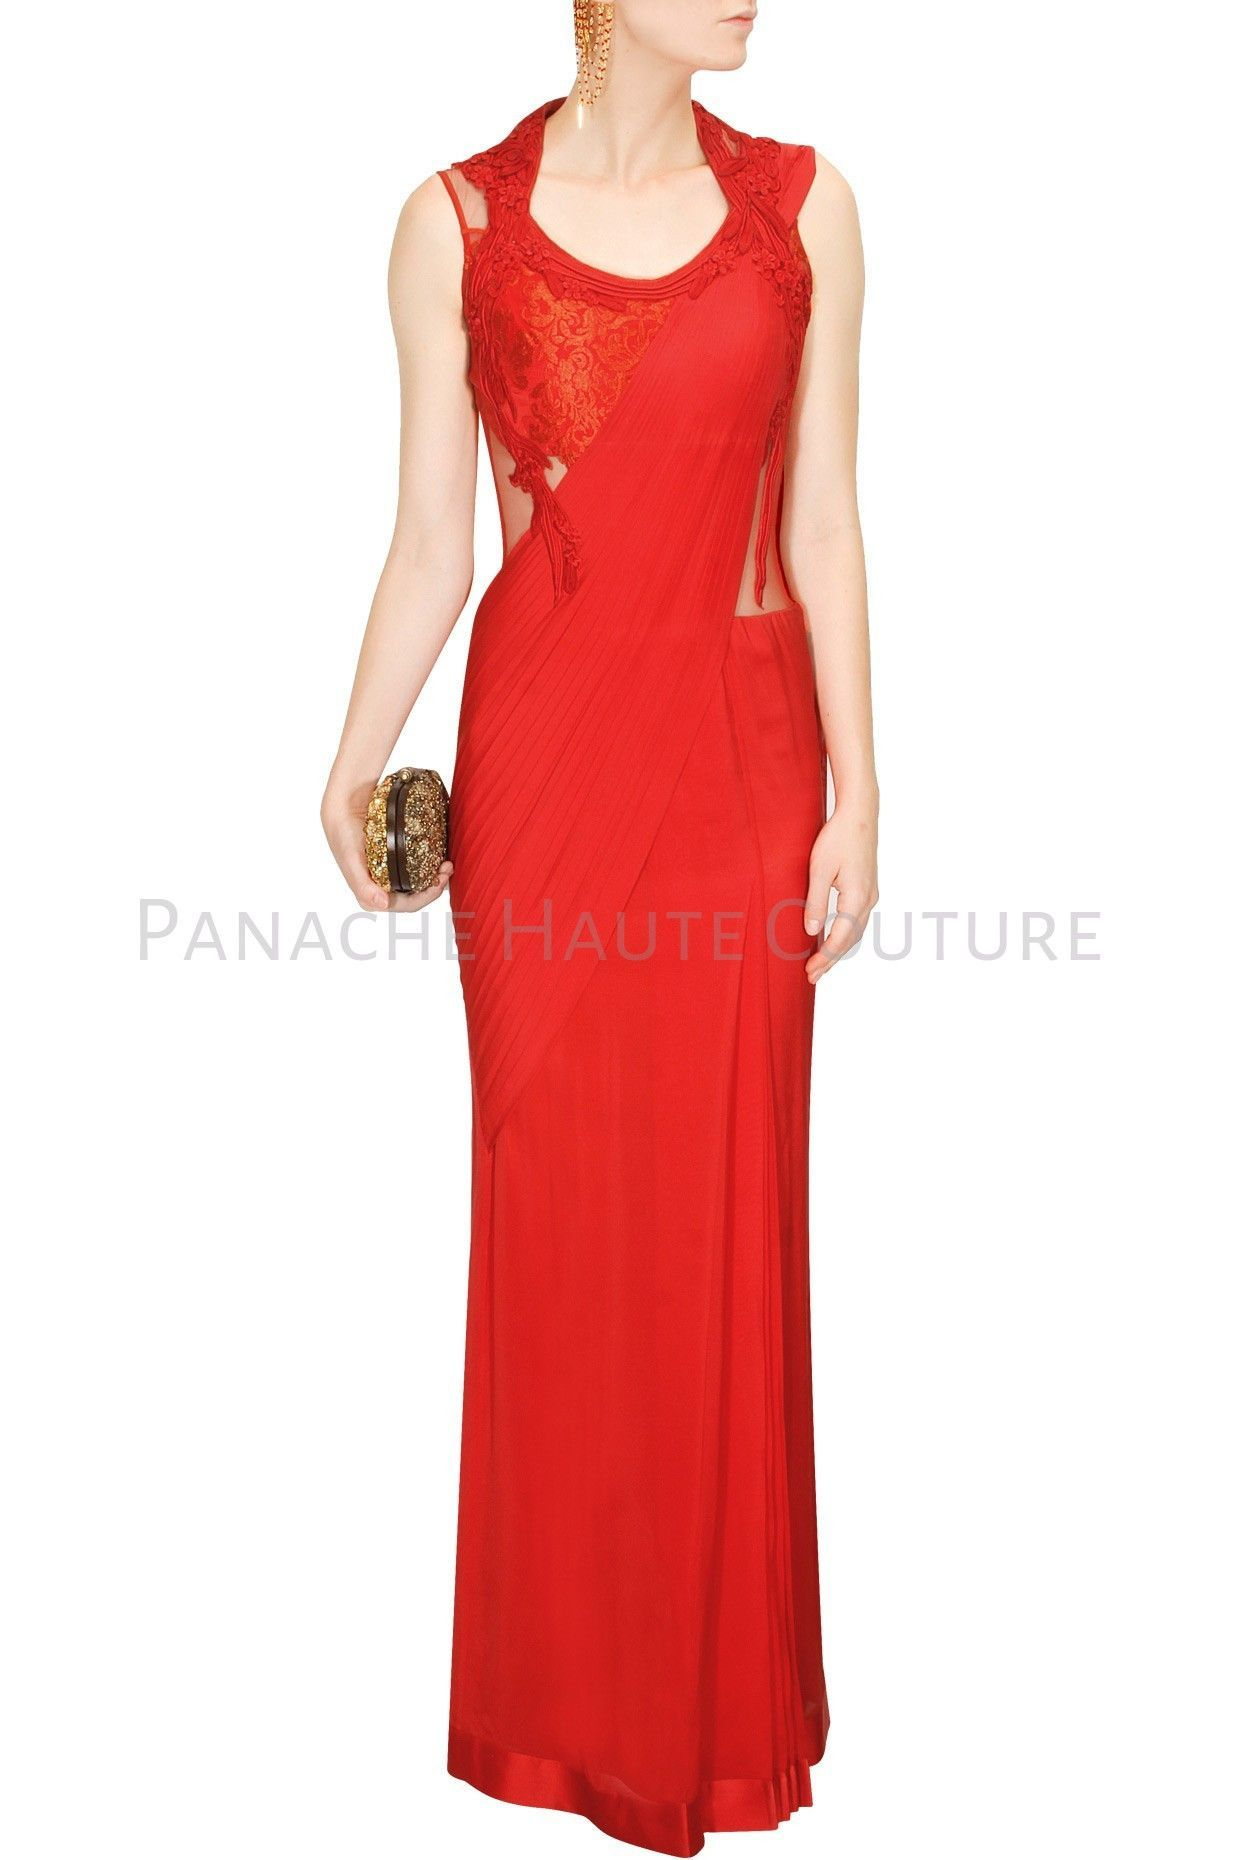 The Red Colour Designer Saree Gown Is Available On A